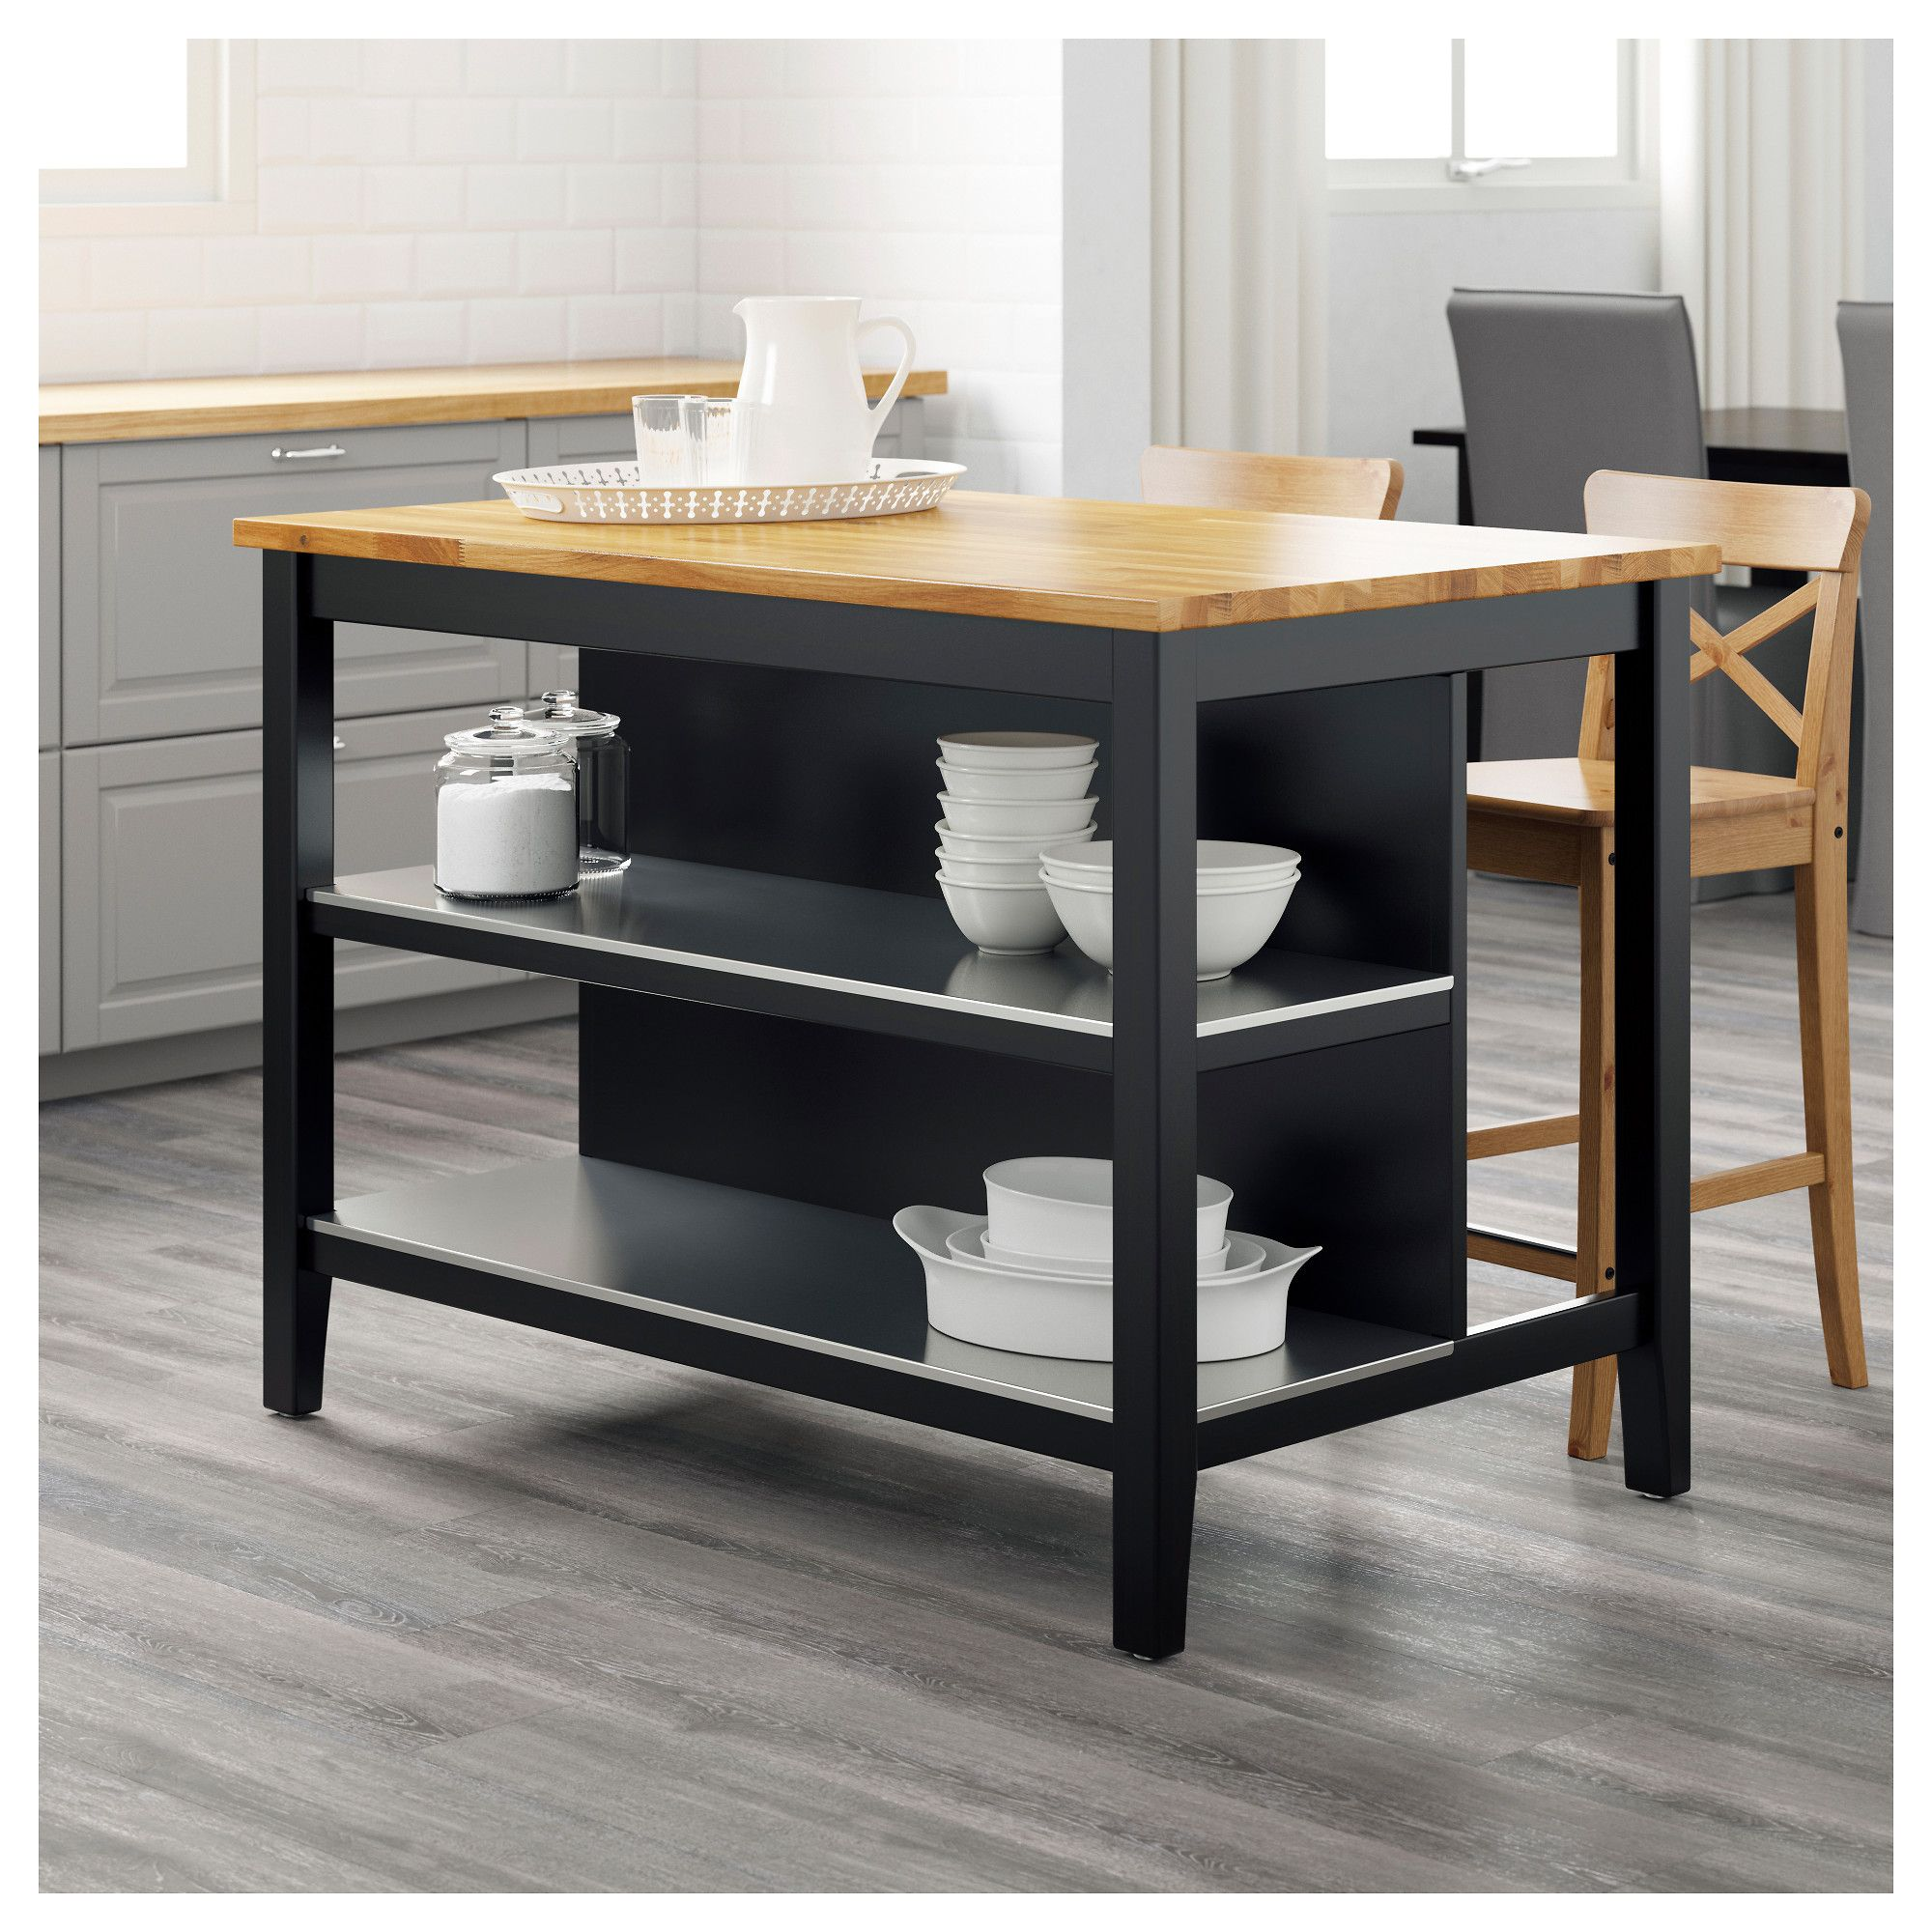 STENSTORP Kitchen island Black-brown/oak 126x79 cm | Island und Ikea